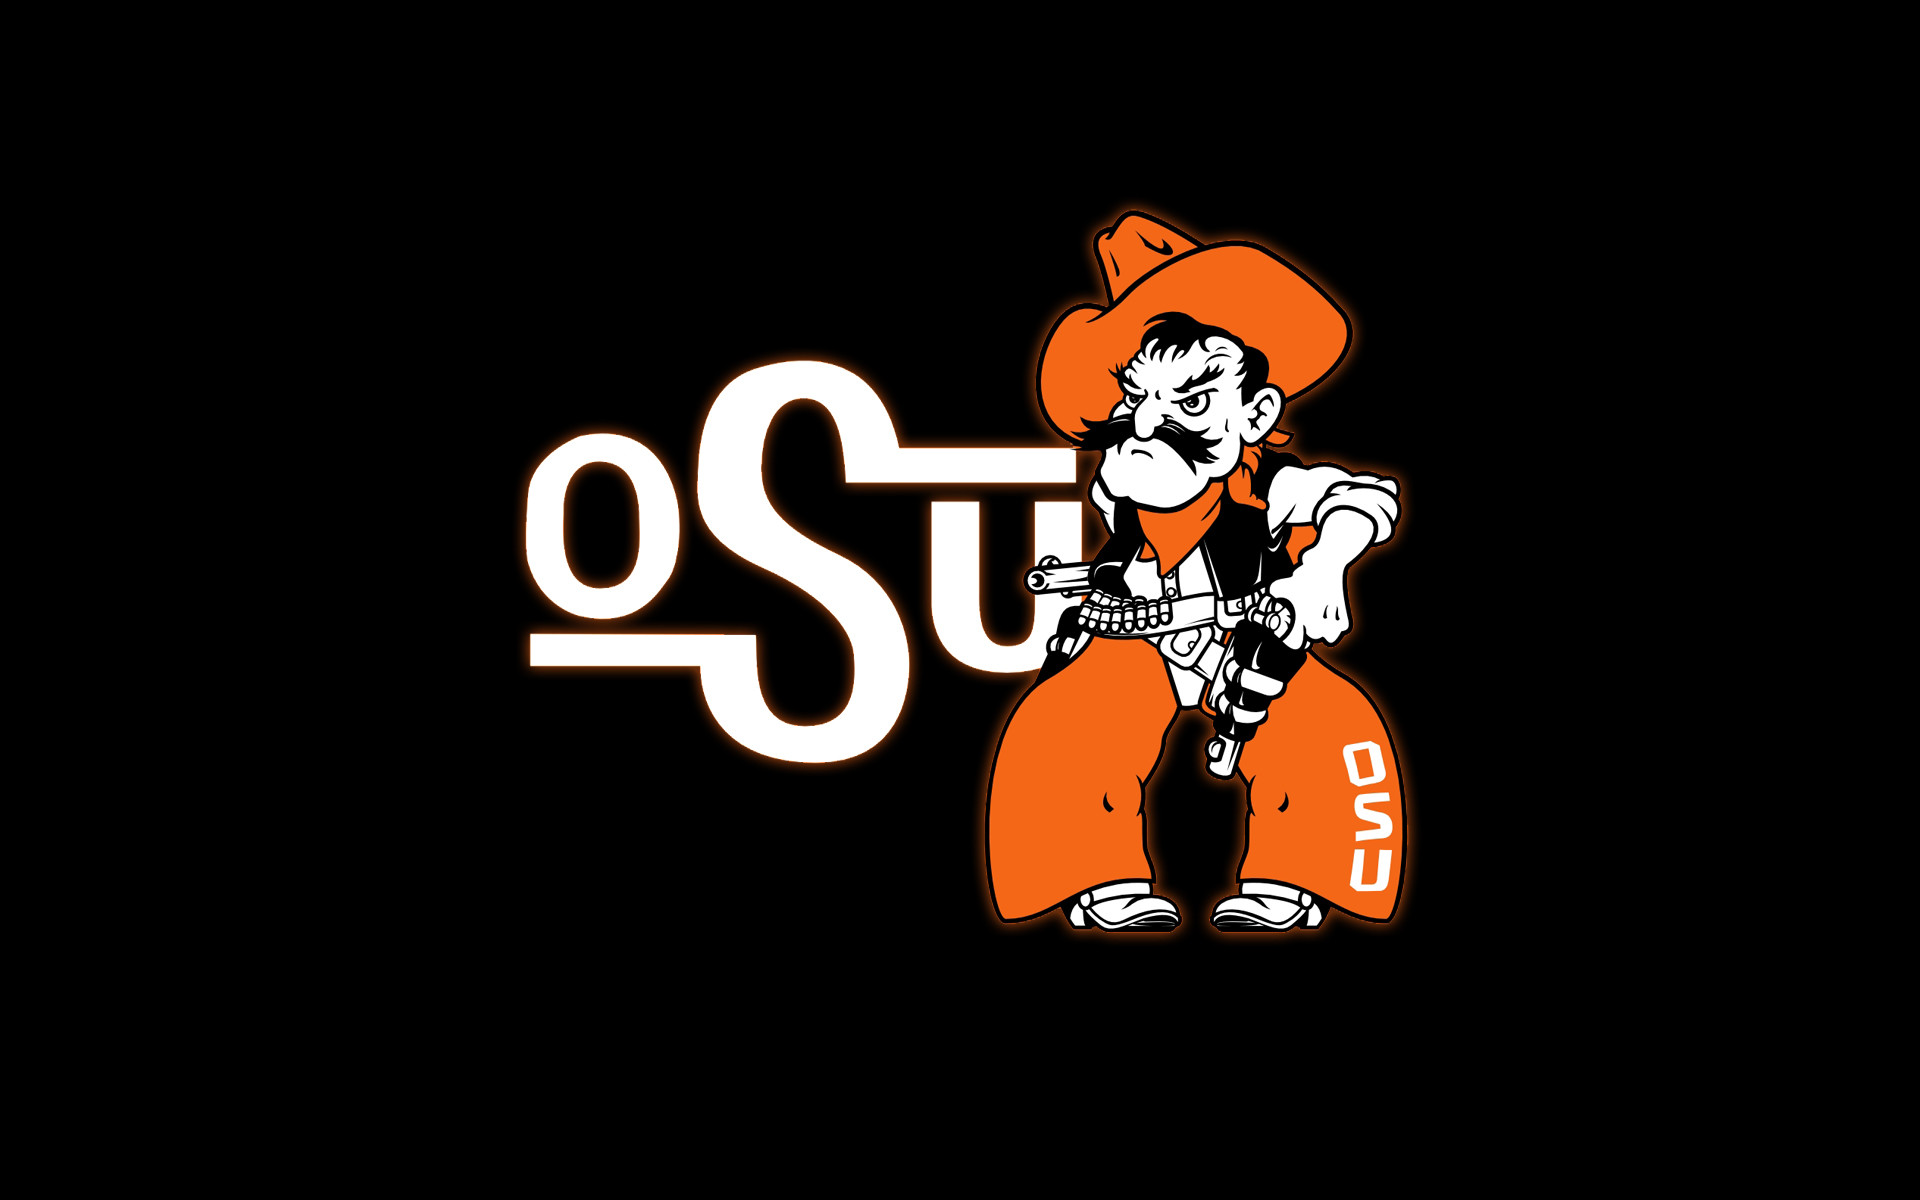 1920x1200 oklahoma state wallpaper for computer Free Oklahoma State Football  Wallpapers